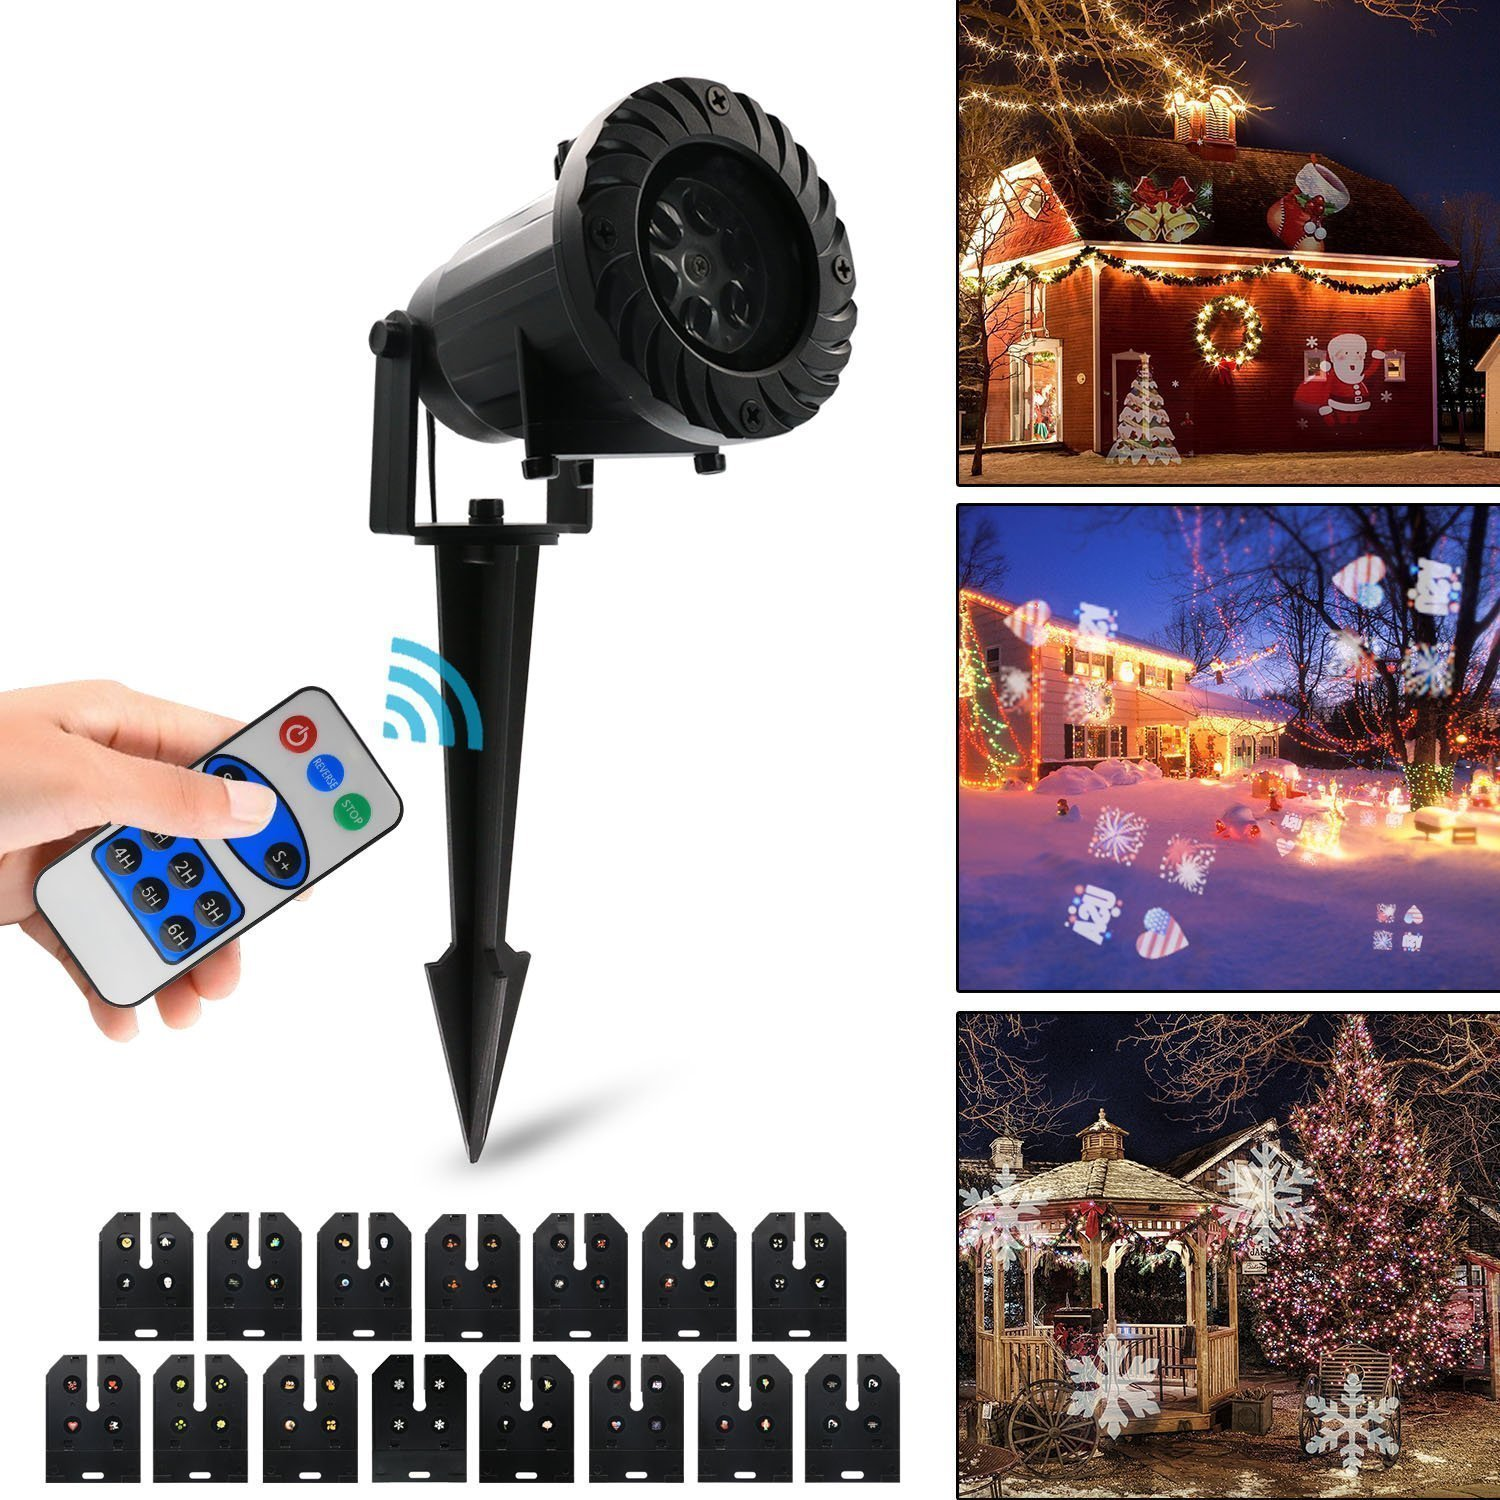 Vansky Led Projector Lights, Christmas Lights with RF Remote Control, 15 Slides Dynamic Lighting for Mother's Day,Birthday Party,Holiday Decoration,Wedding, Decoration